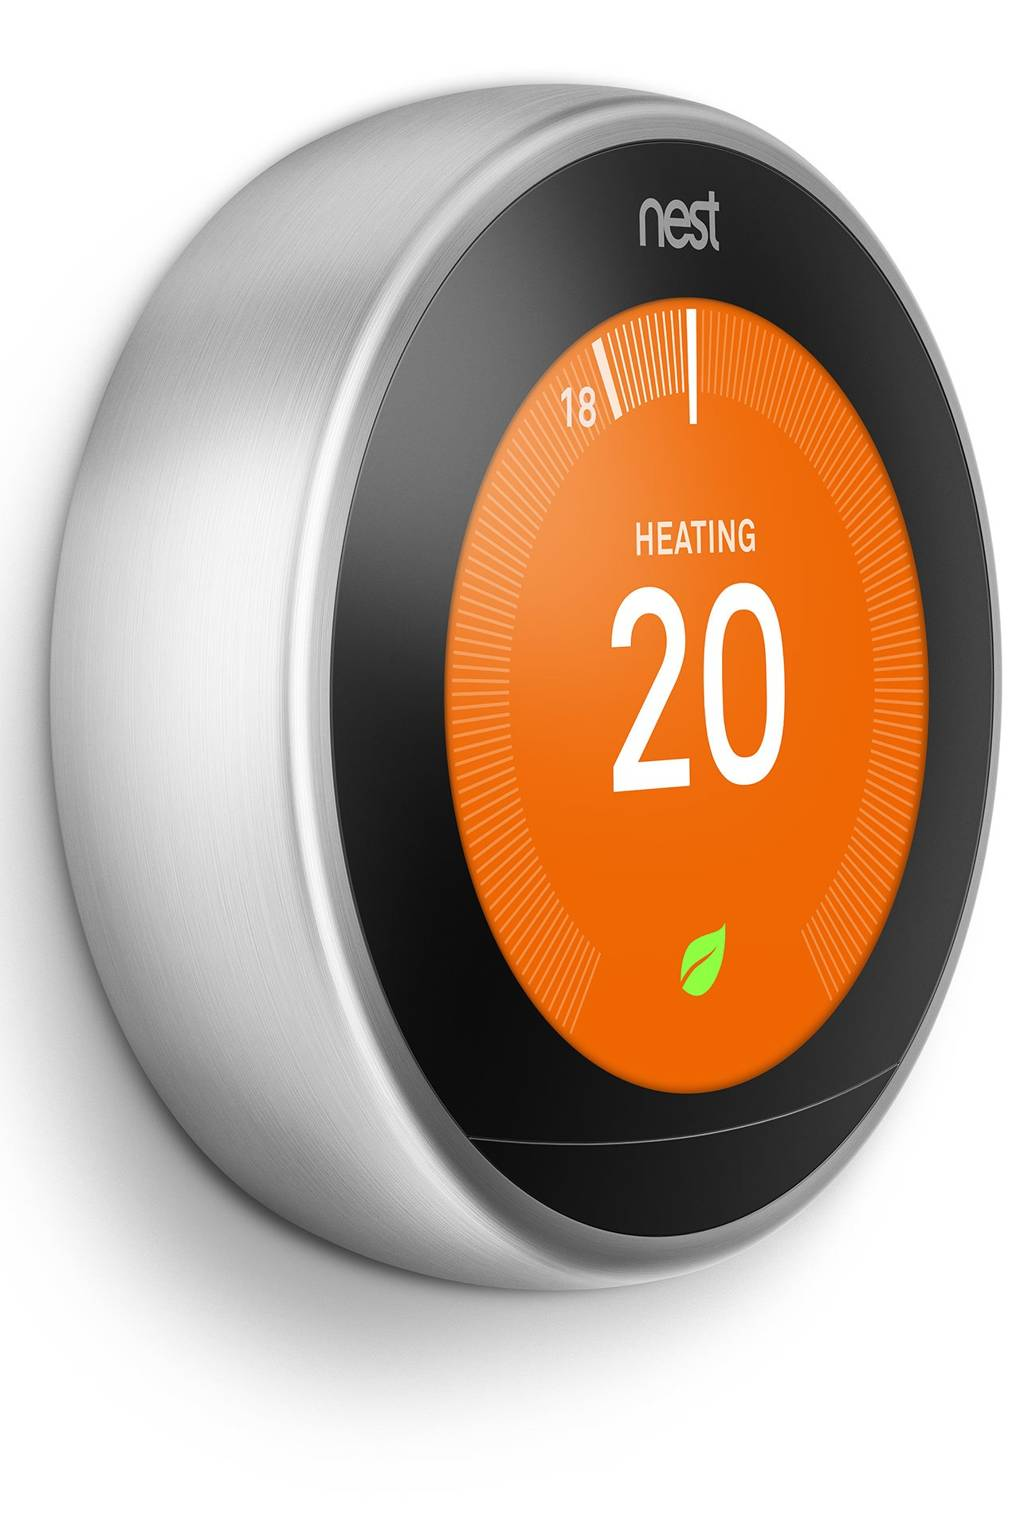 Nests Learning Thermostat Finally Understands Your Boiler Wired Uk 1st Gen Nest Wiring Diagram